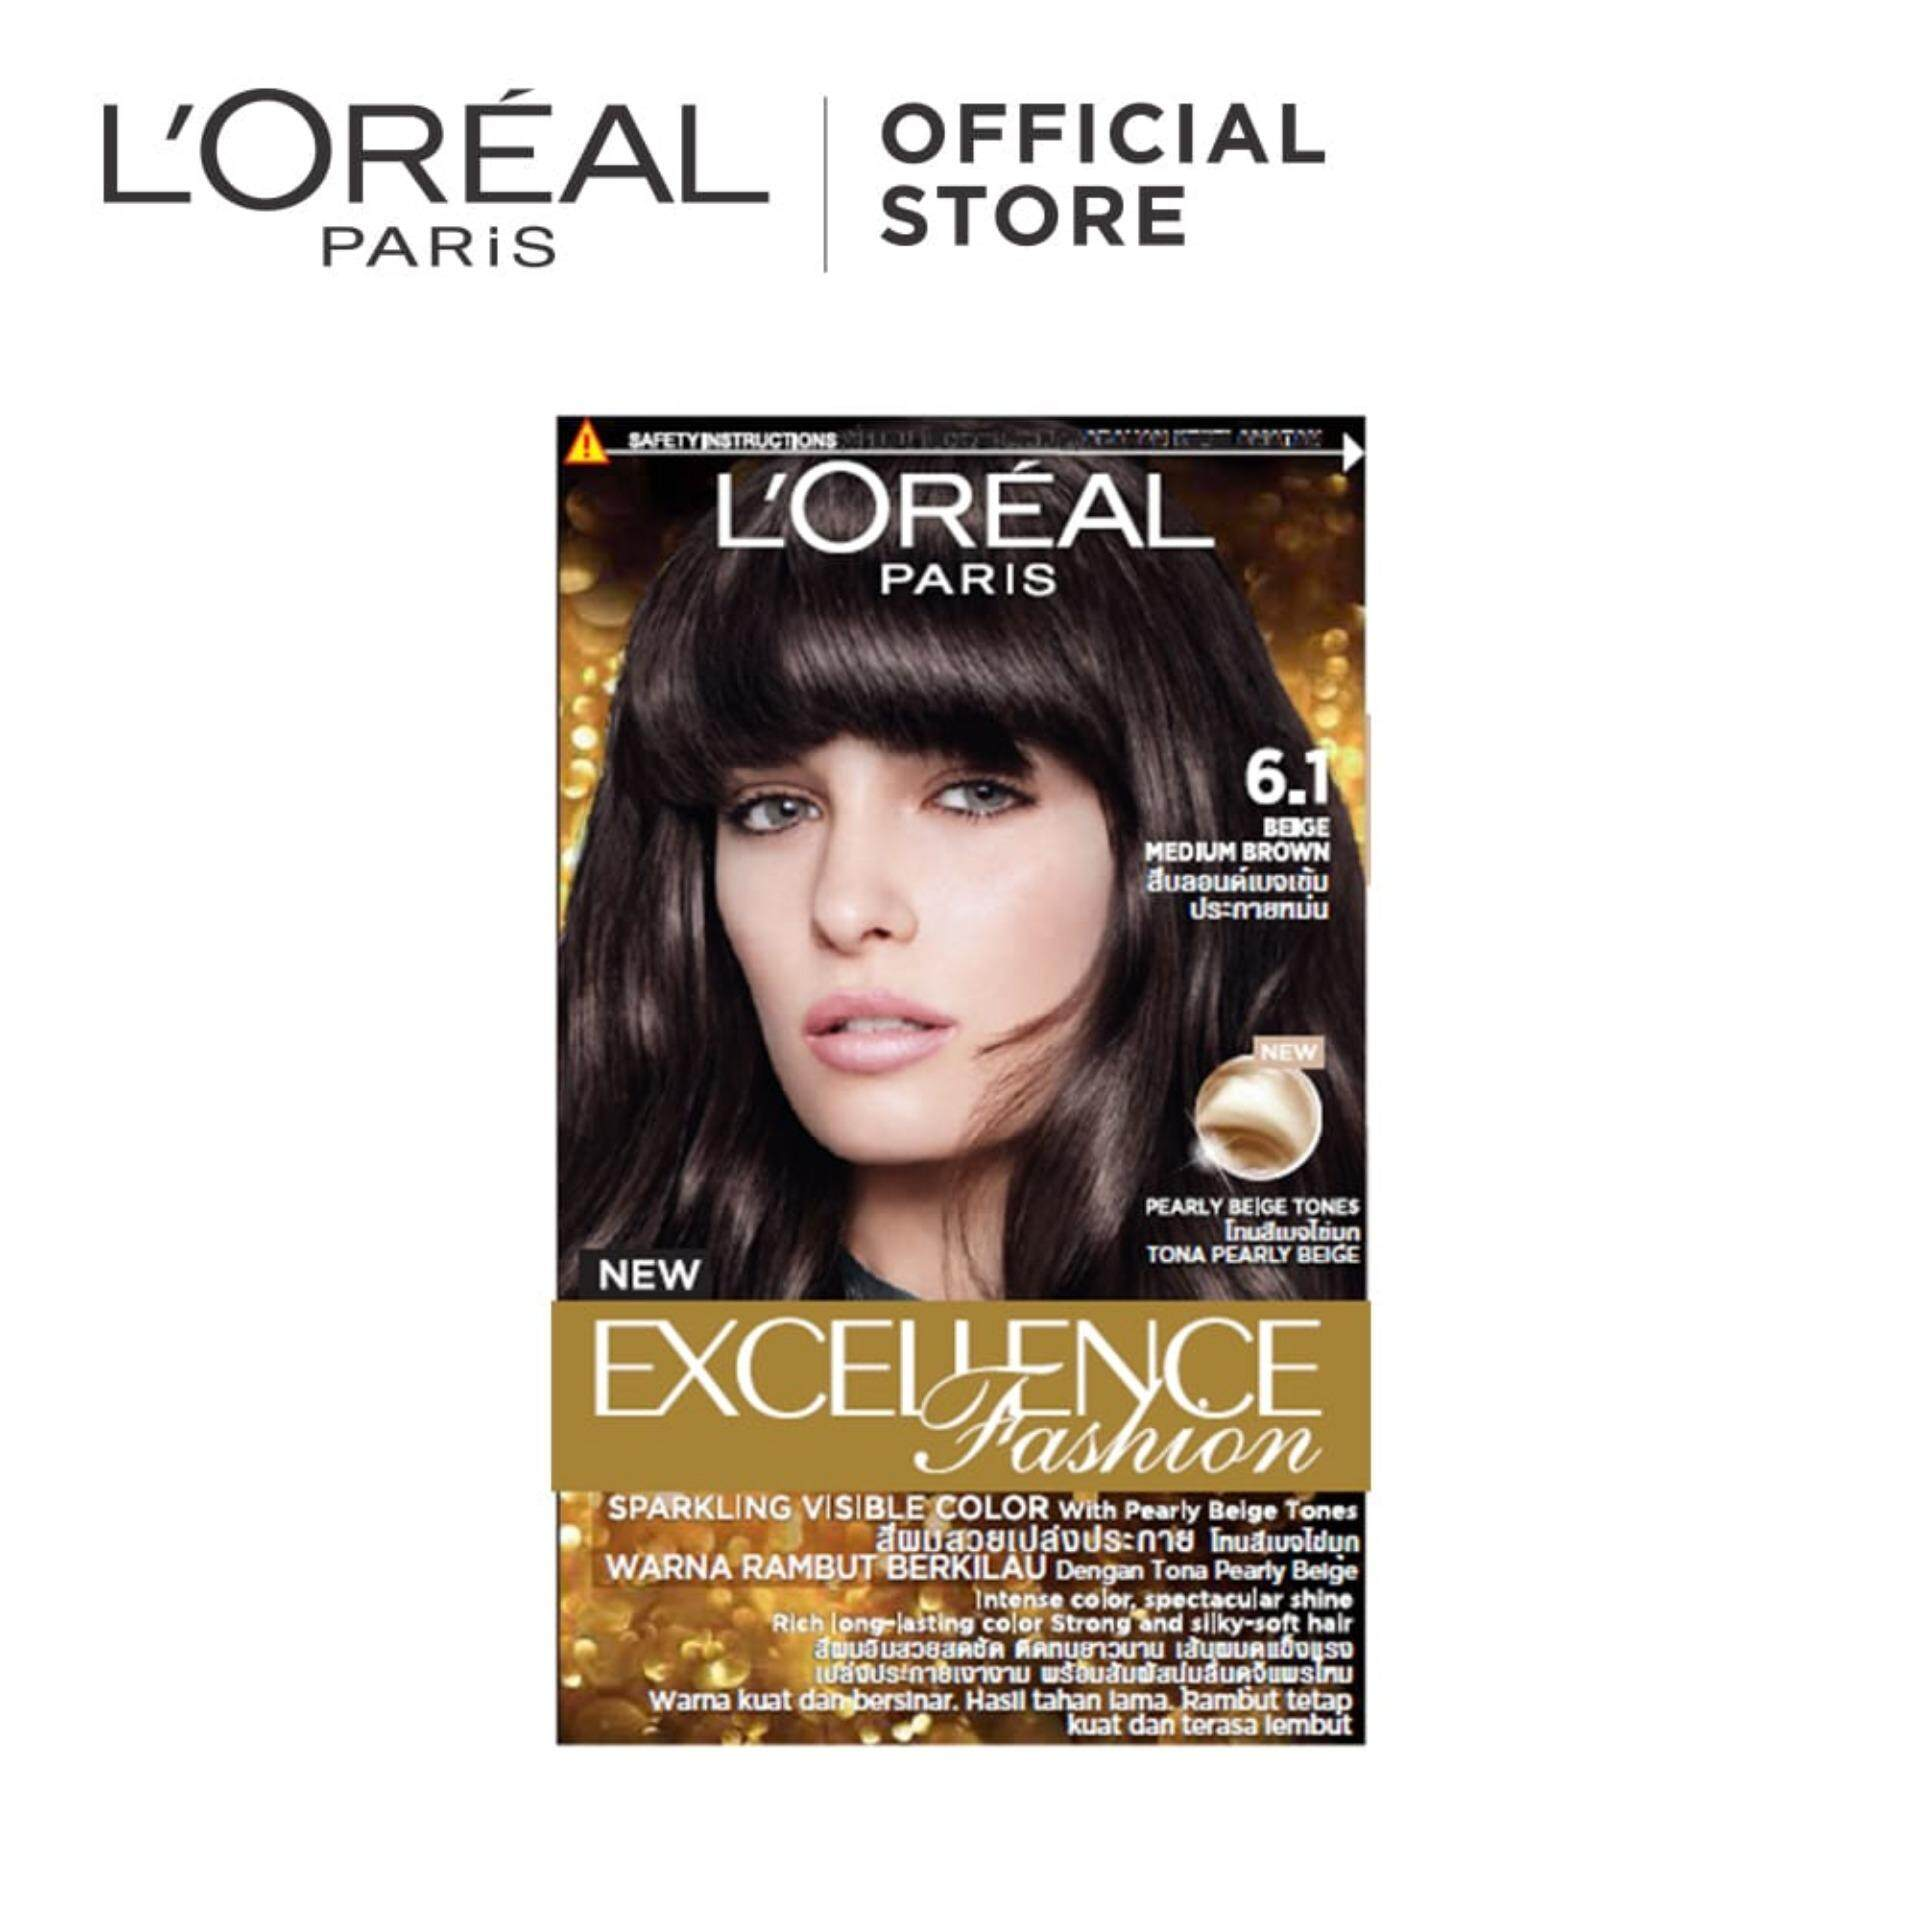 Loreal Paris Hair Care Hair Coloring Price In Malaysia Best L